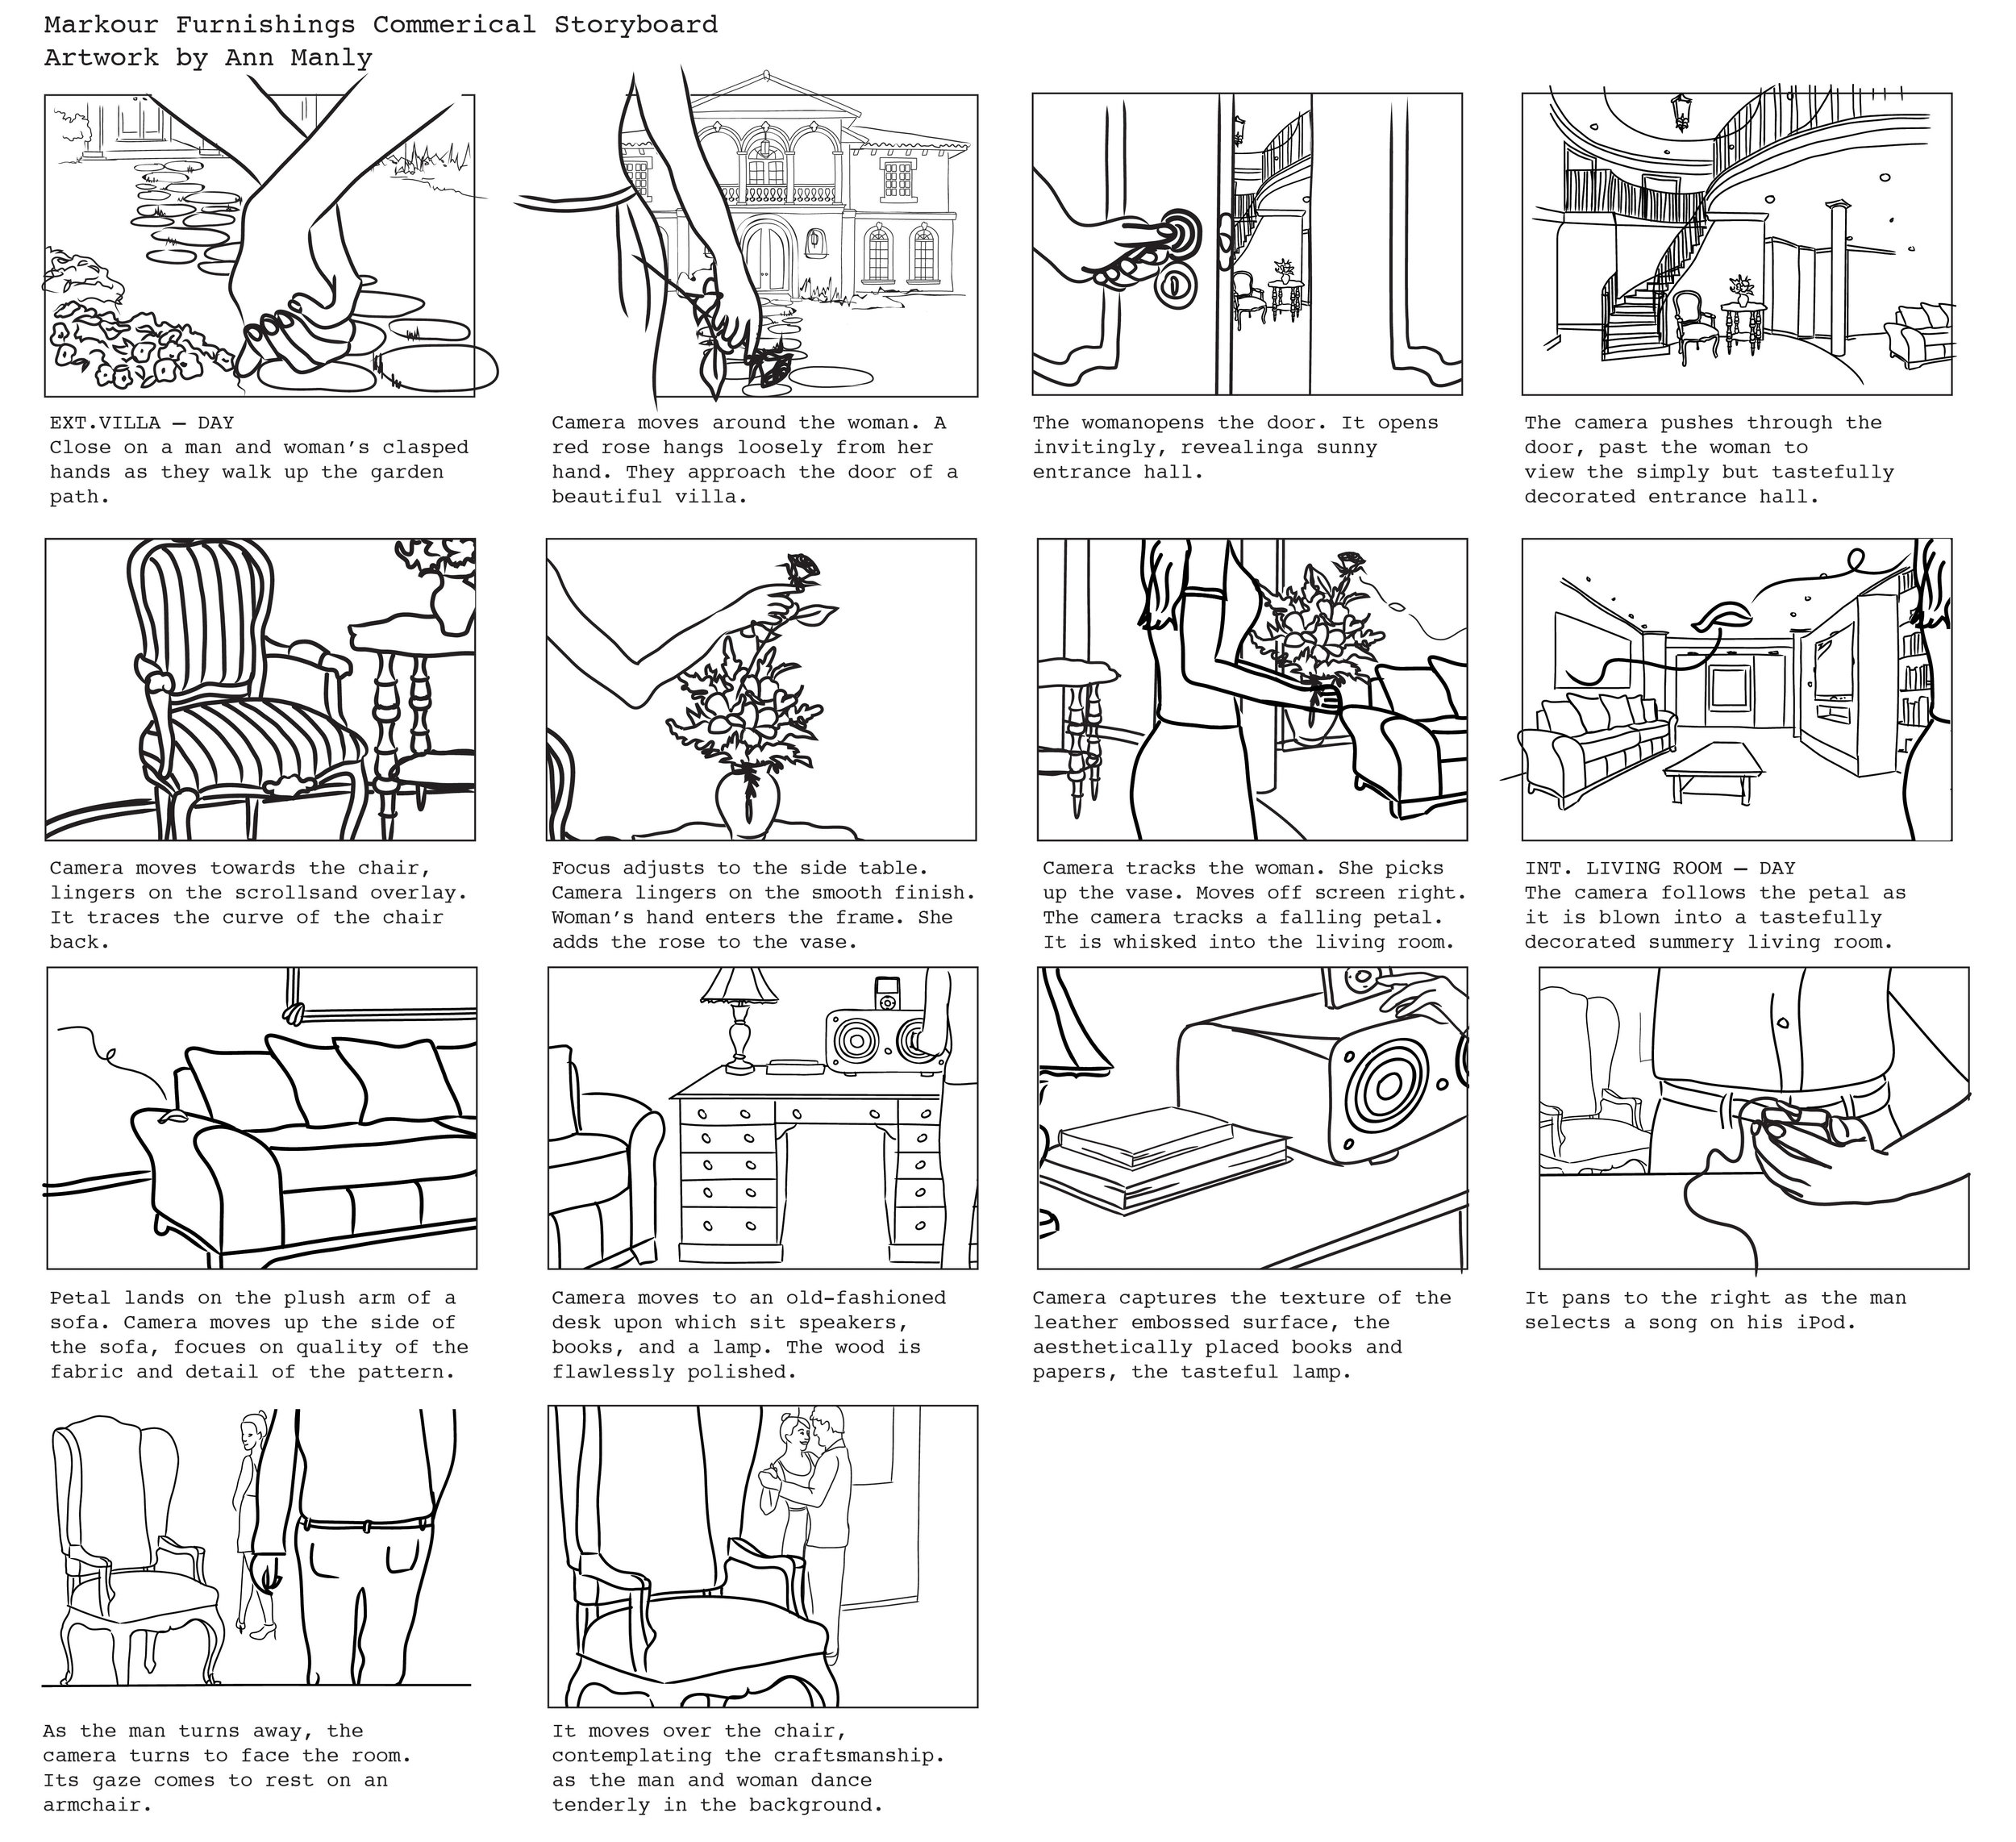 markour_storyboard-16.jpg